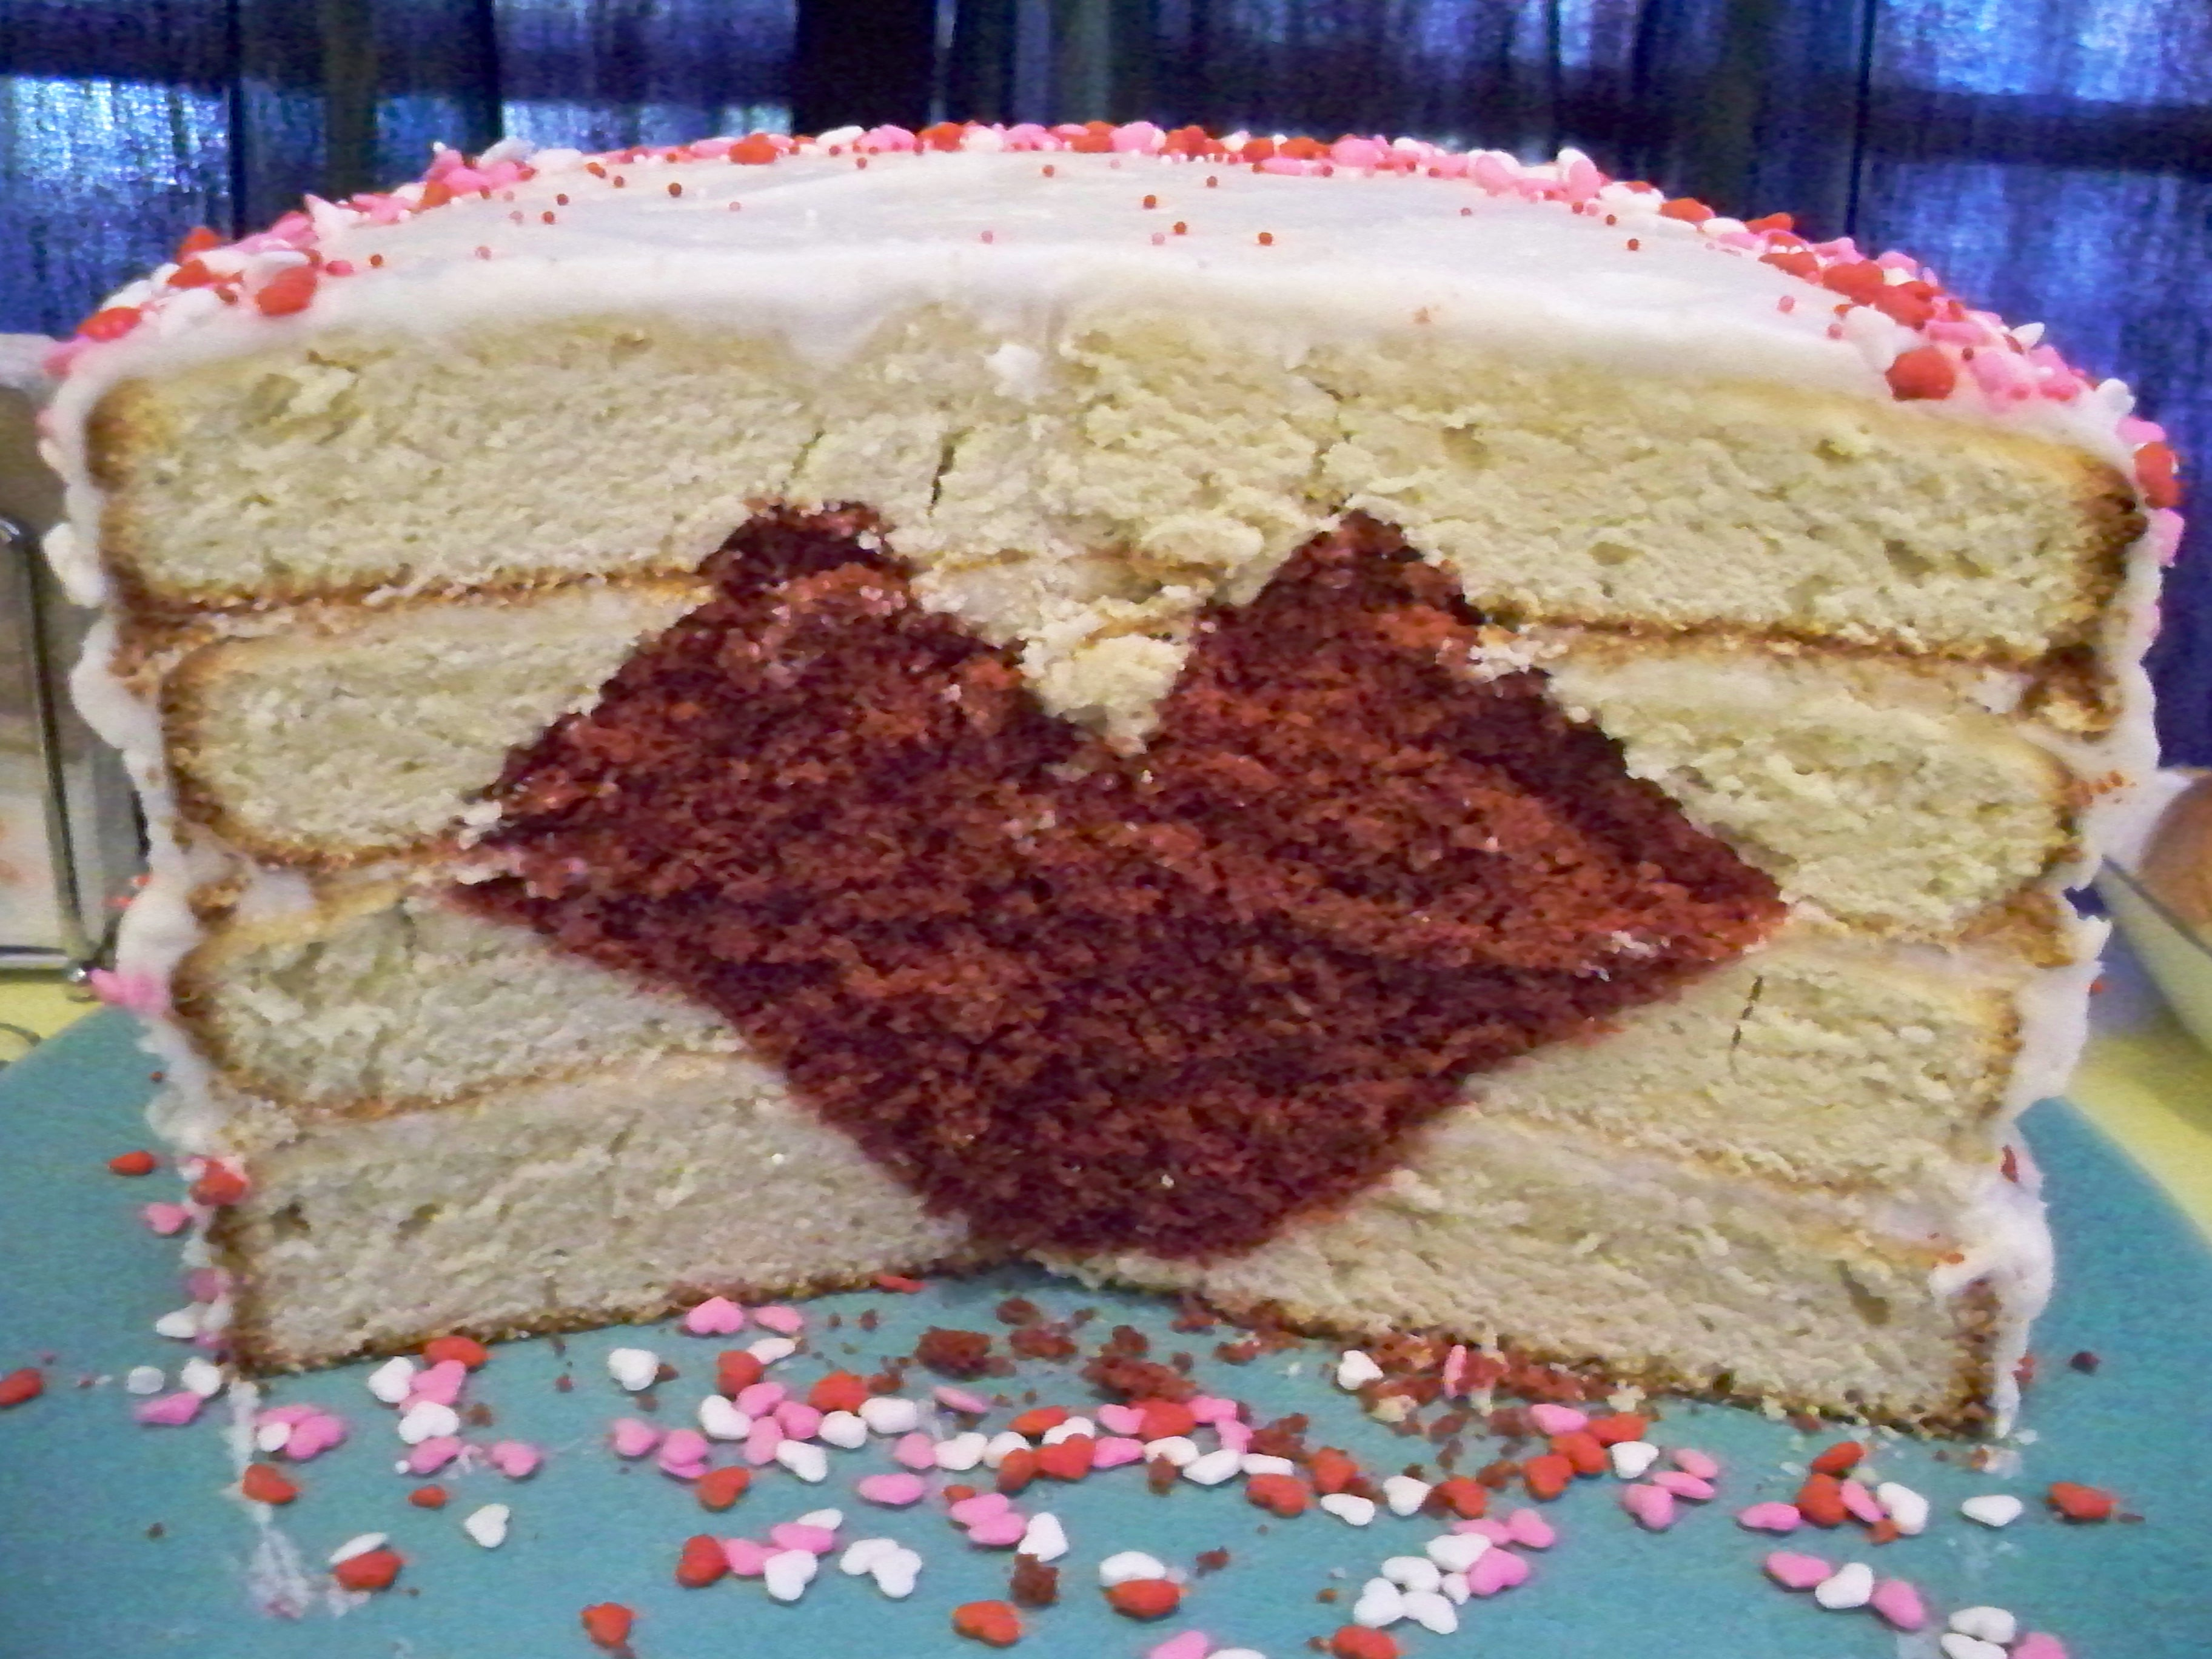 Cake With Icing Baked Inside : Garlic My Soul   Baking A Heart Inside A Cake